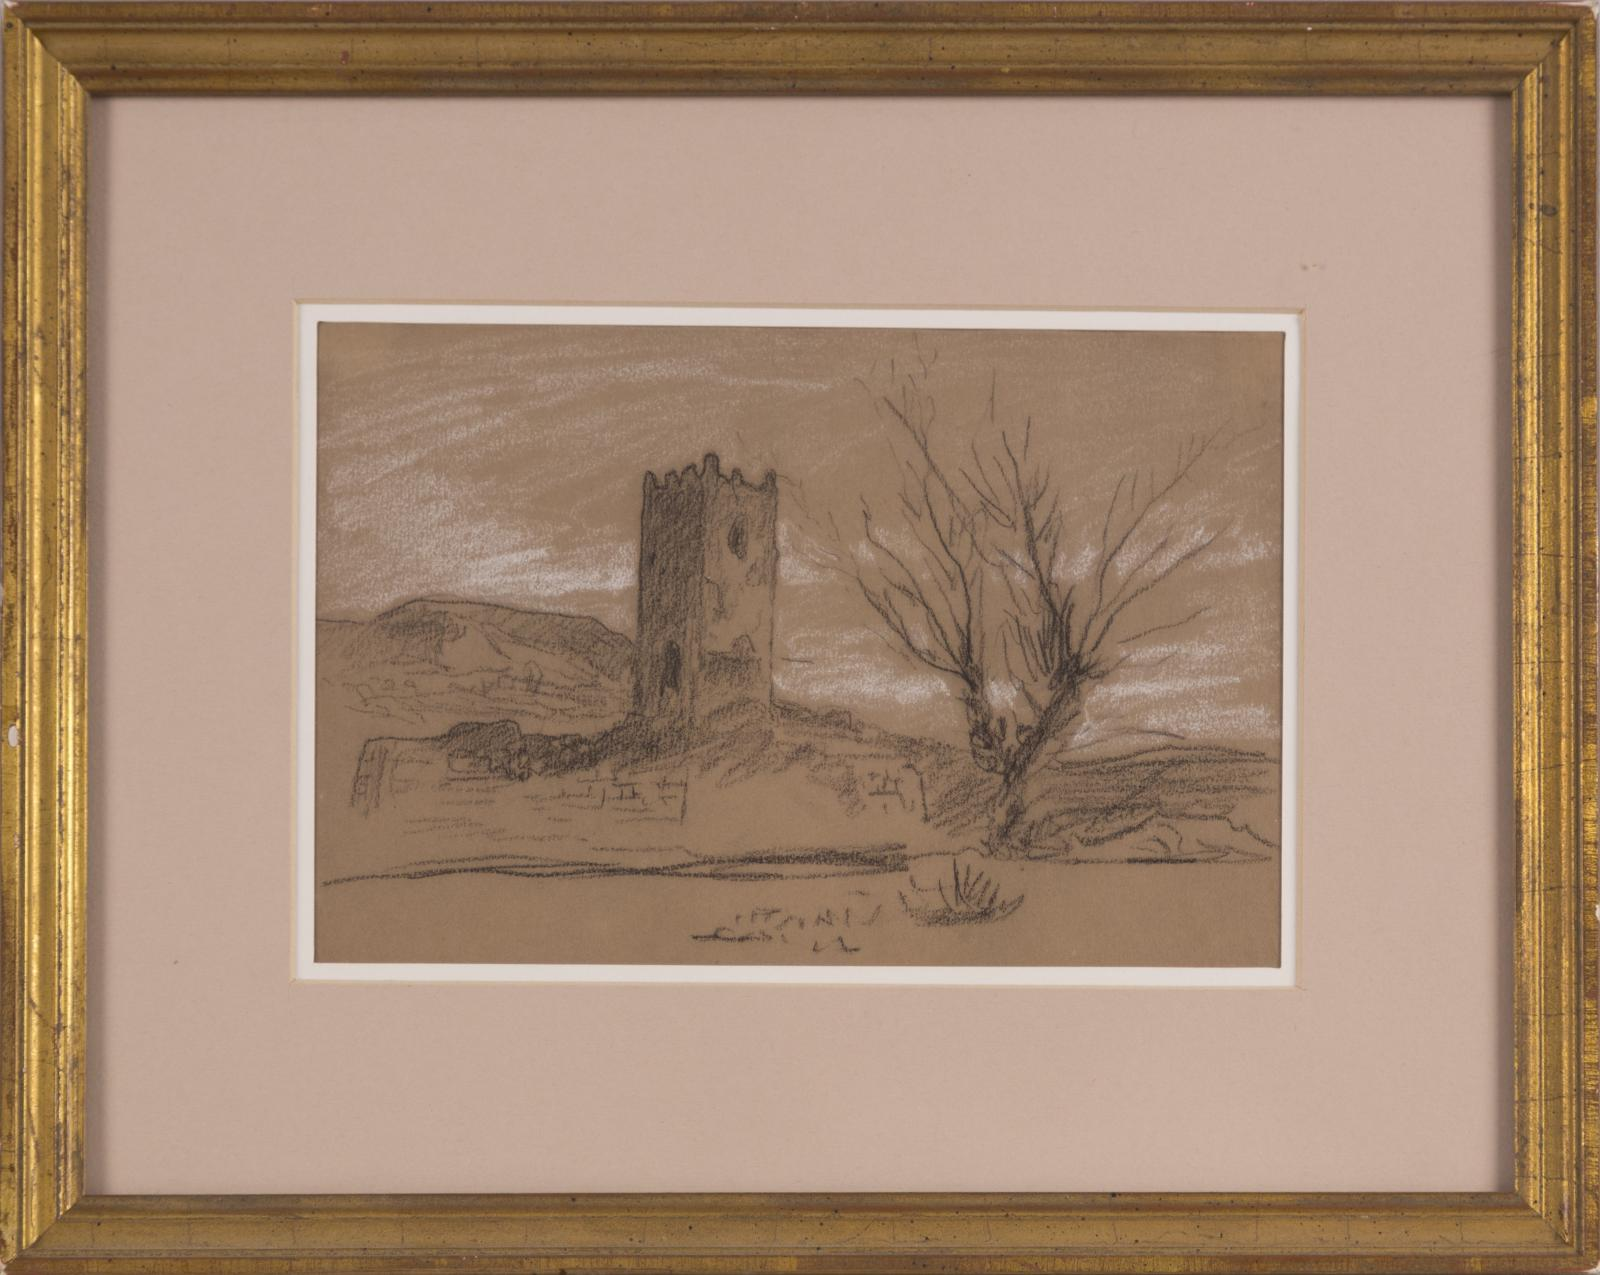 Tower in a Landscape